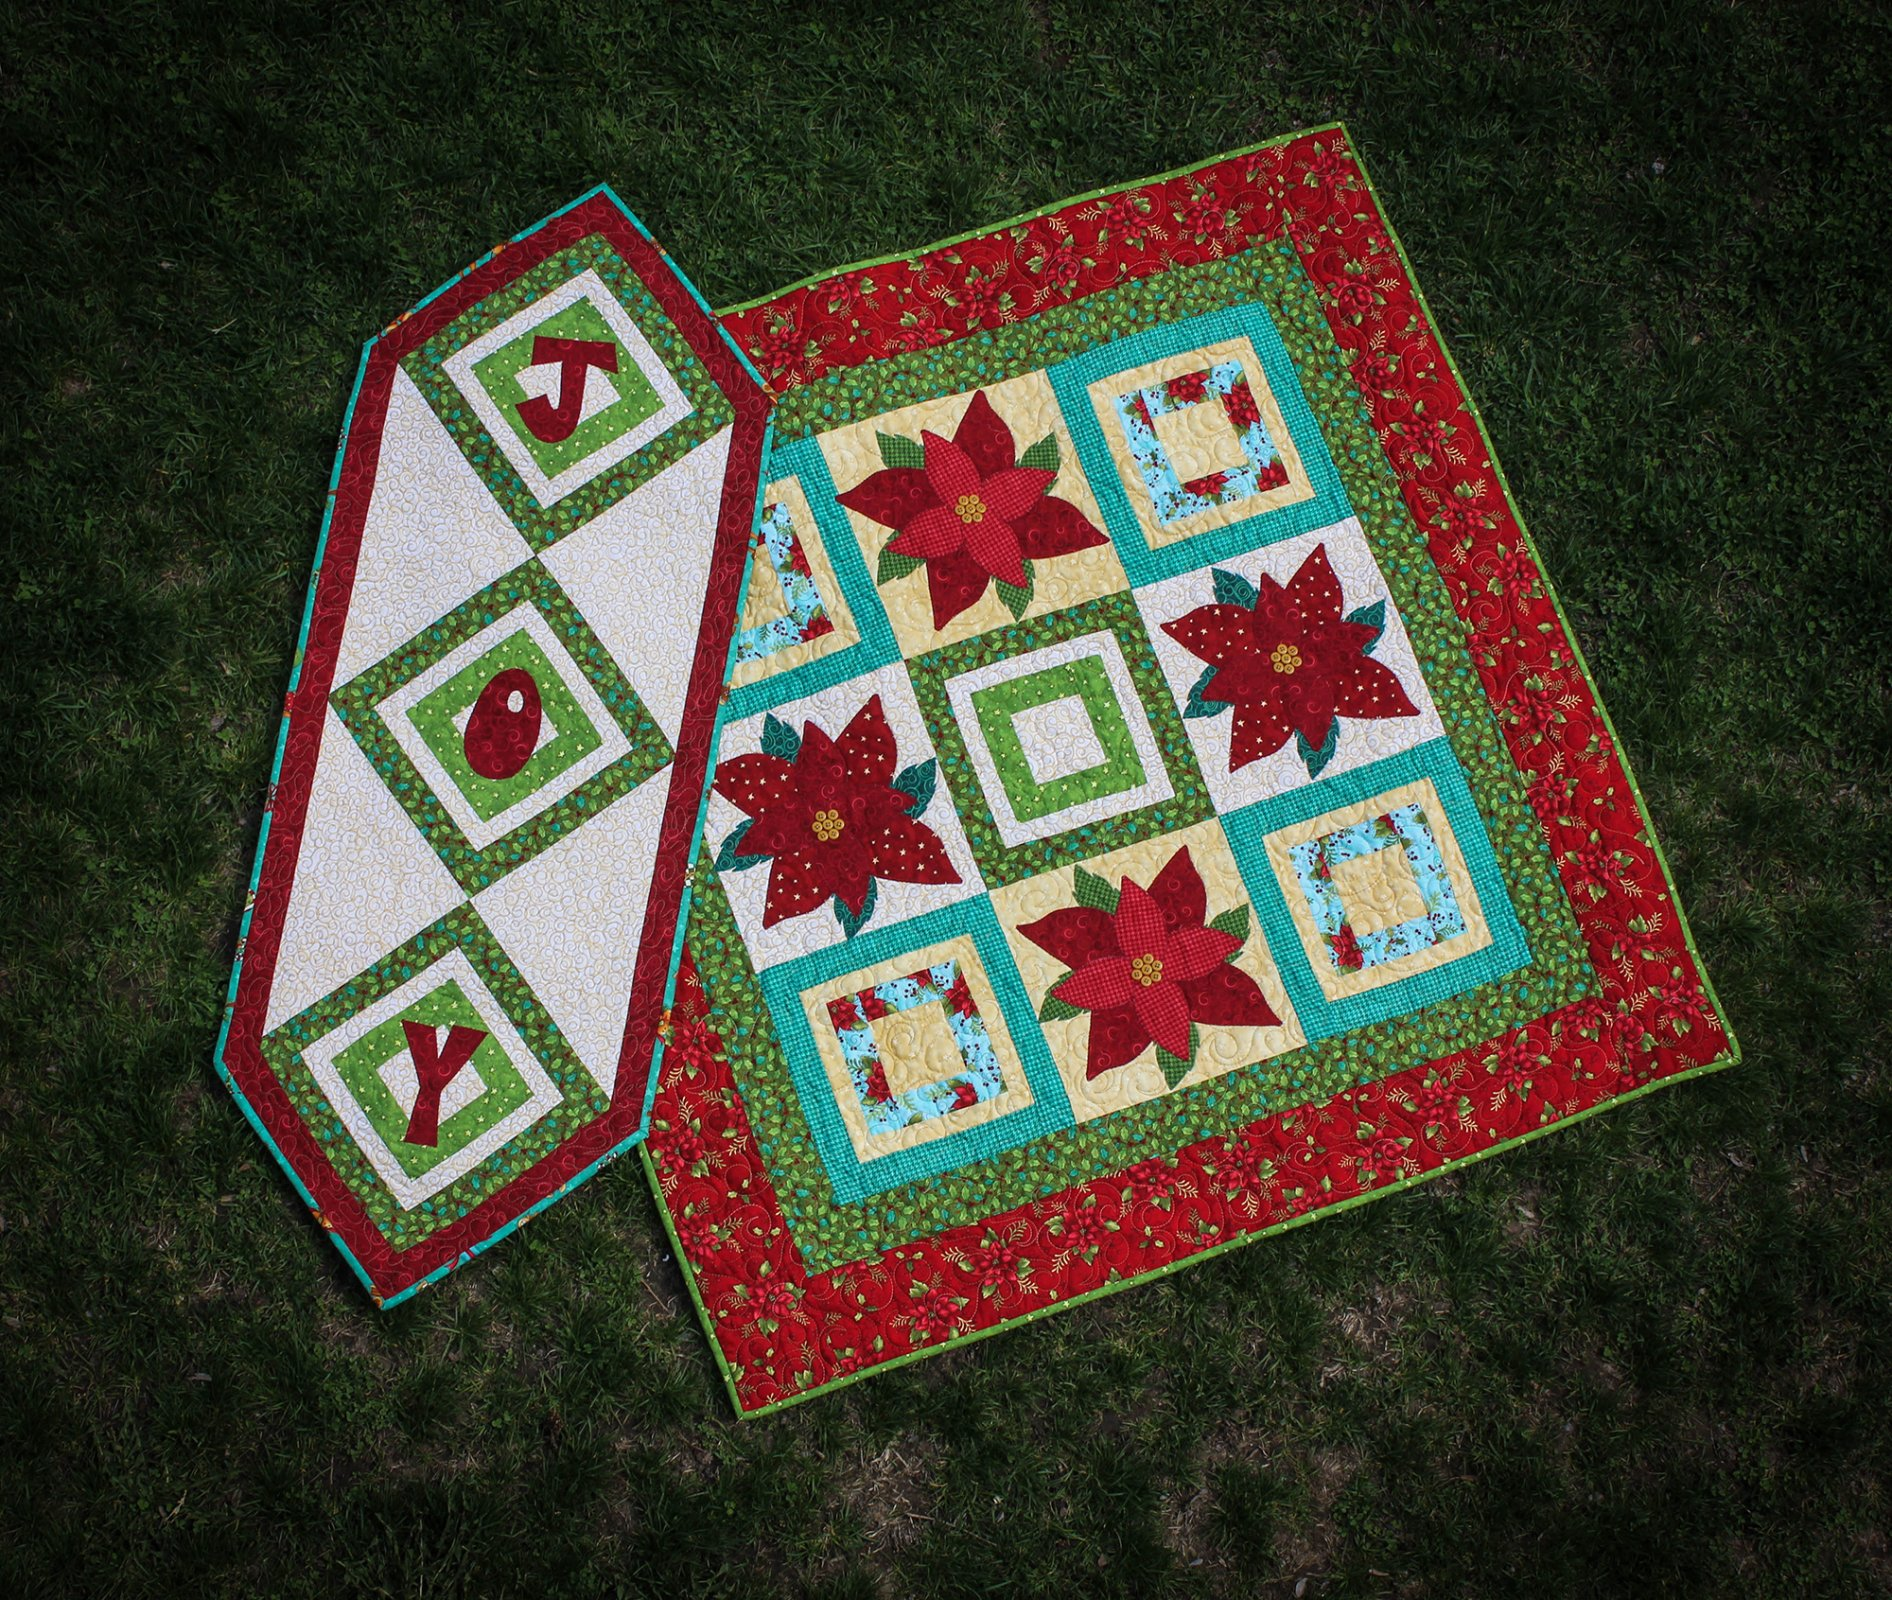 Poinsettia Patch & Joy Table Runner